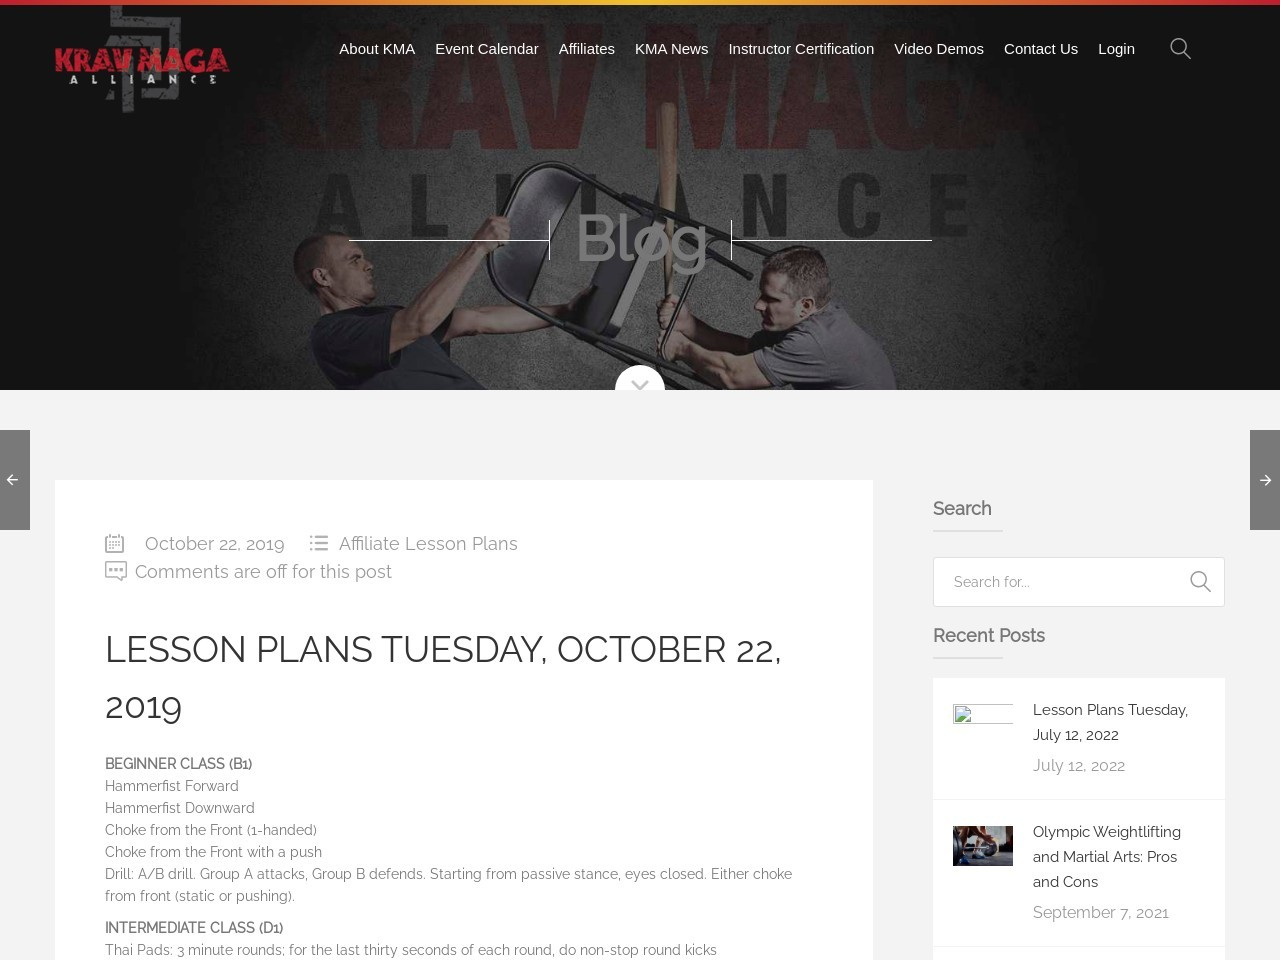 Lesson Plans Tuesday, October 22, 2019